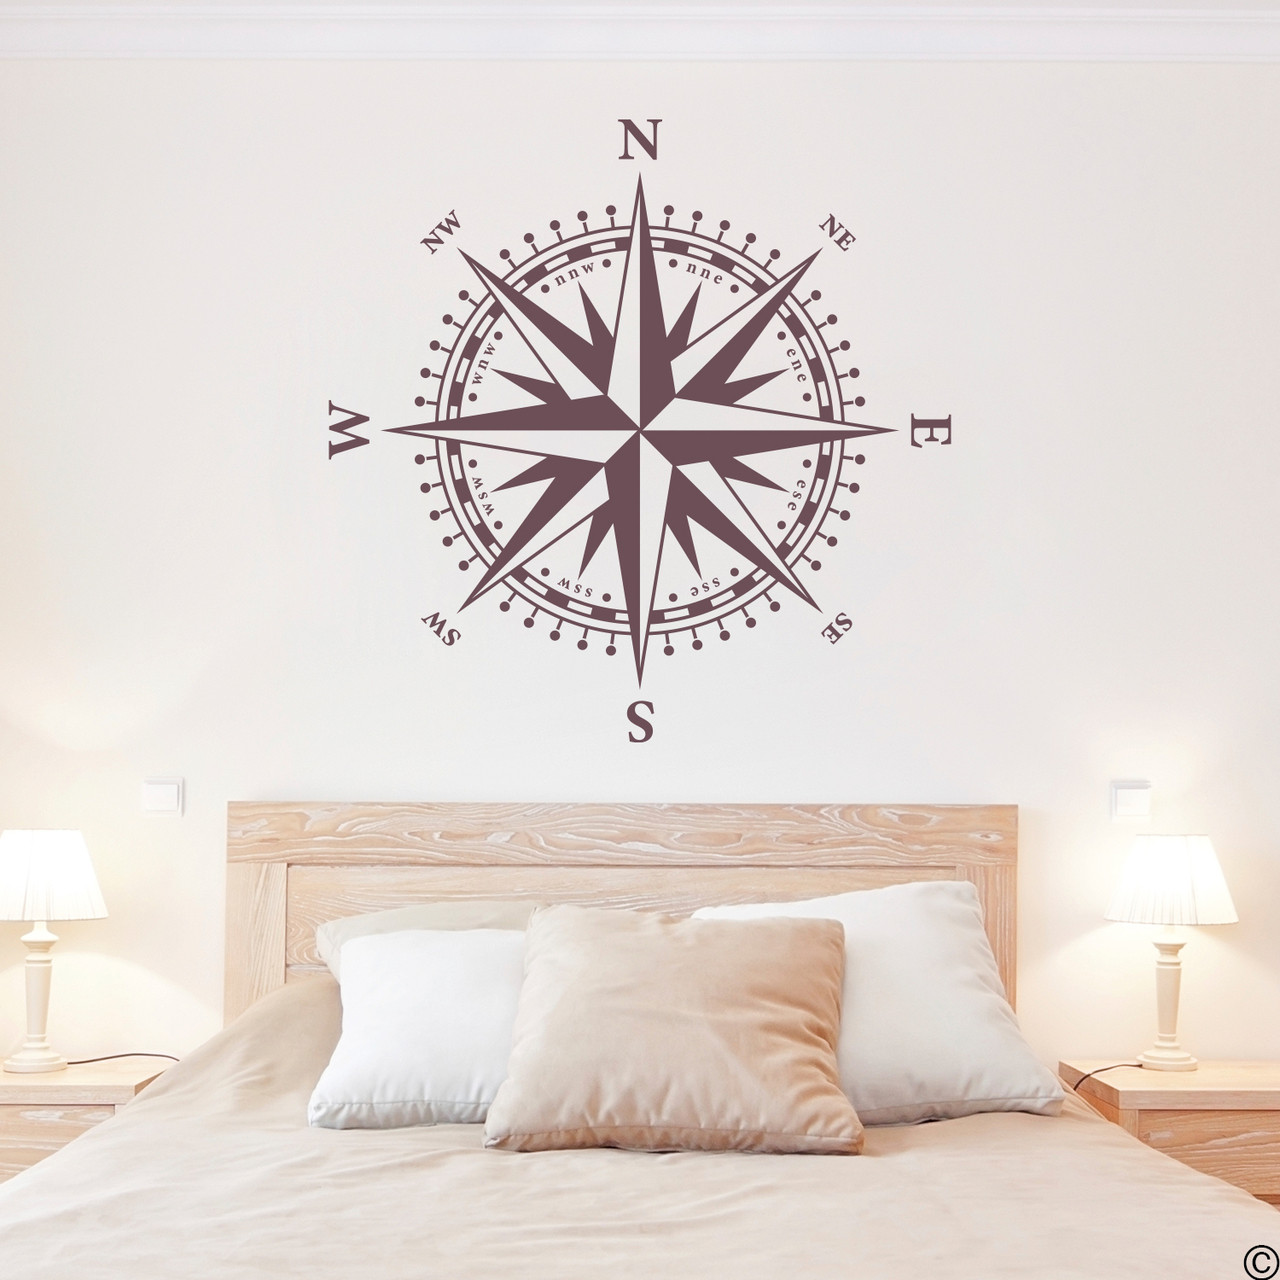 The Christopher Compass wall decal in eggplant vinyl and placed over a headboard in a bedroom.